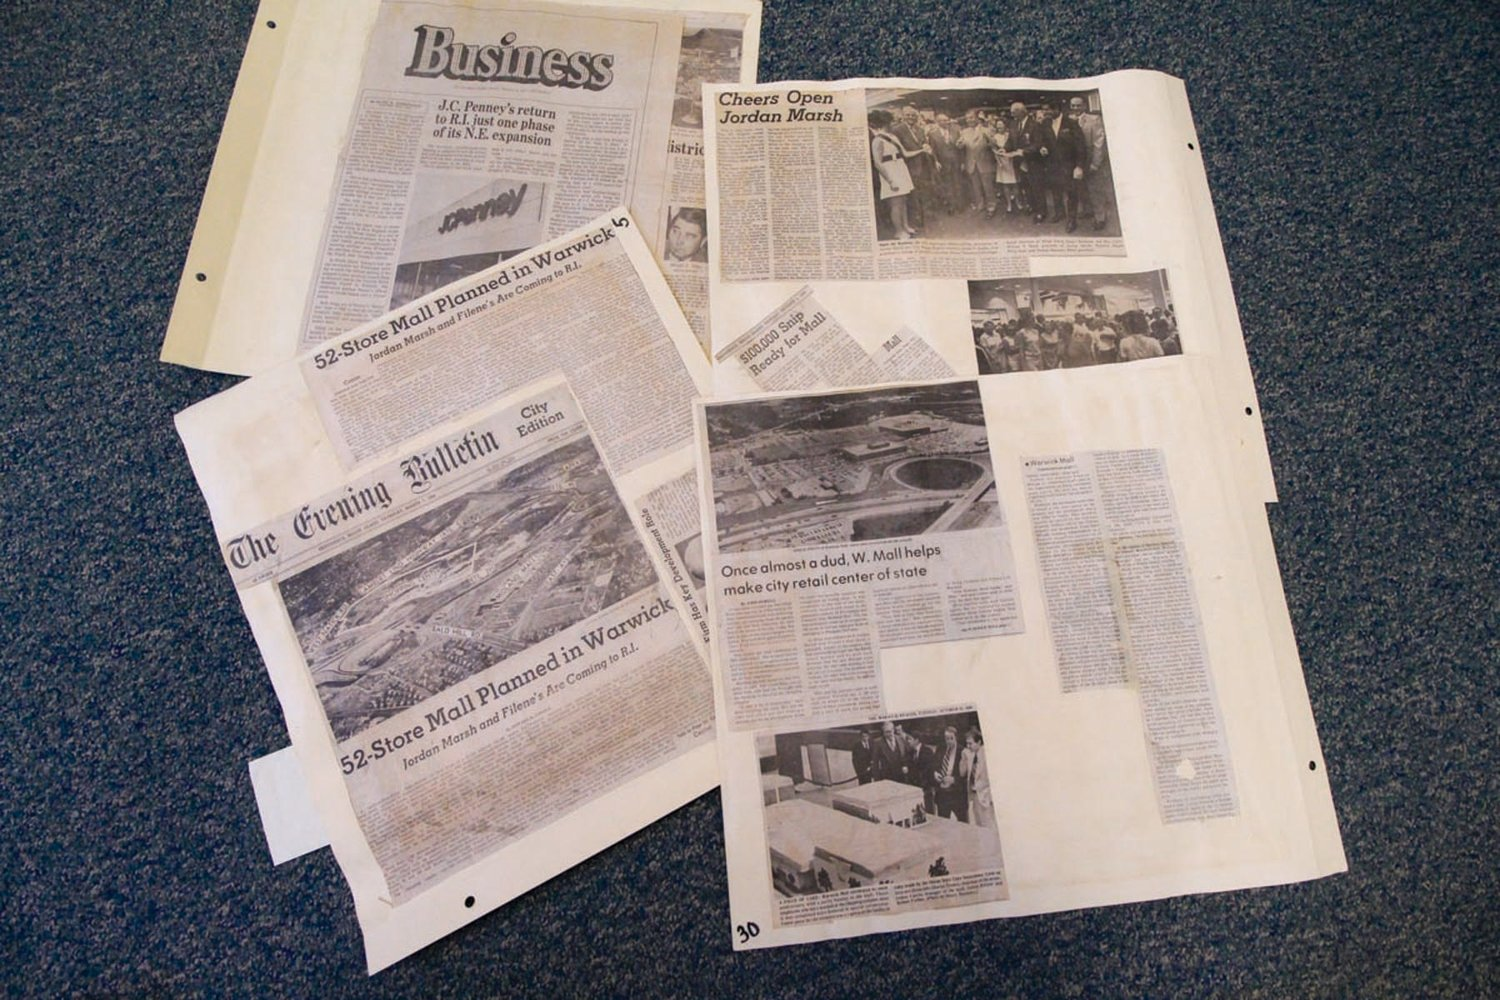 MAKING HEADLINES: Developments at the mall carried the headlines in local and state papers. These are some of the many clippings Lloyd Bliss saved in one of several albums.